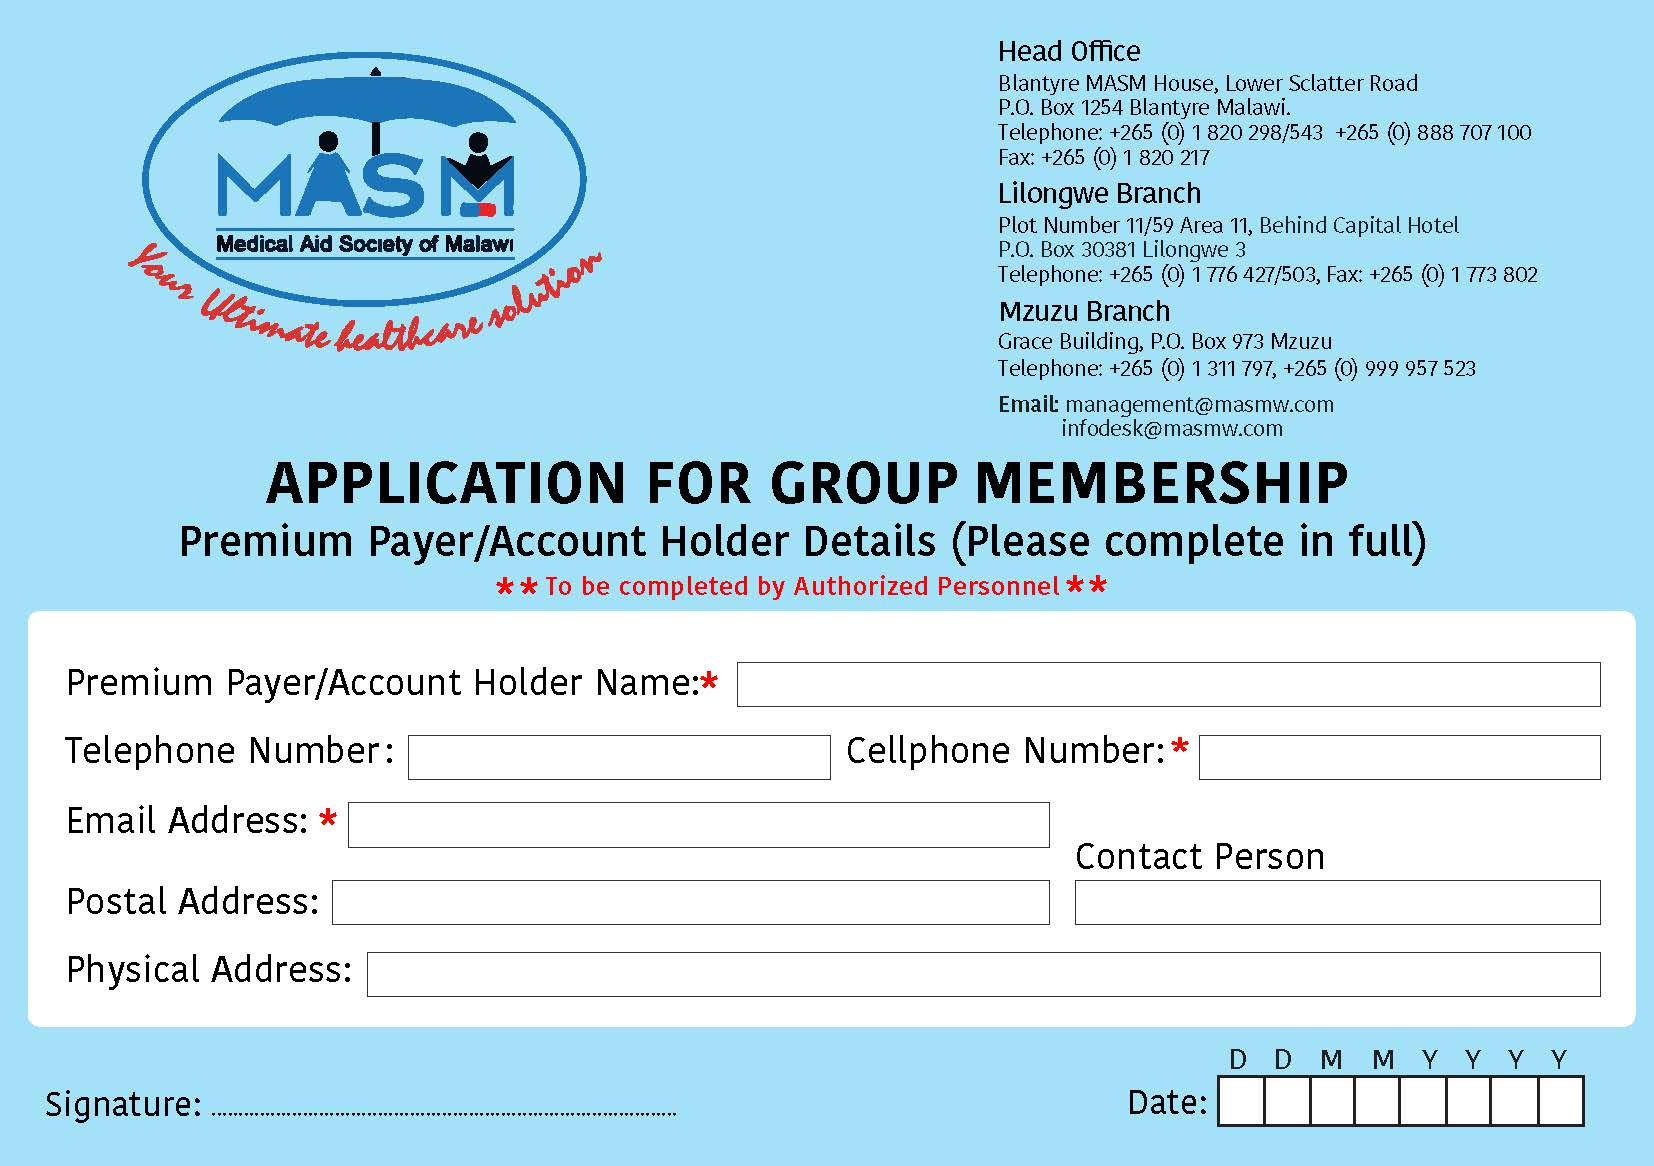 Application for Group Membership